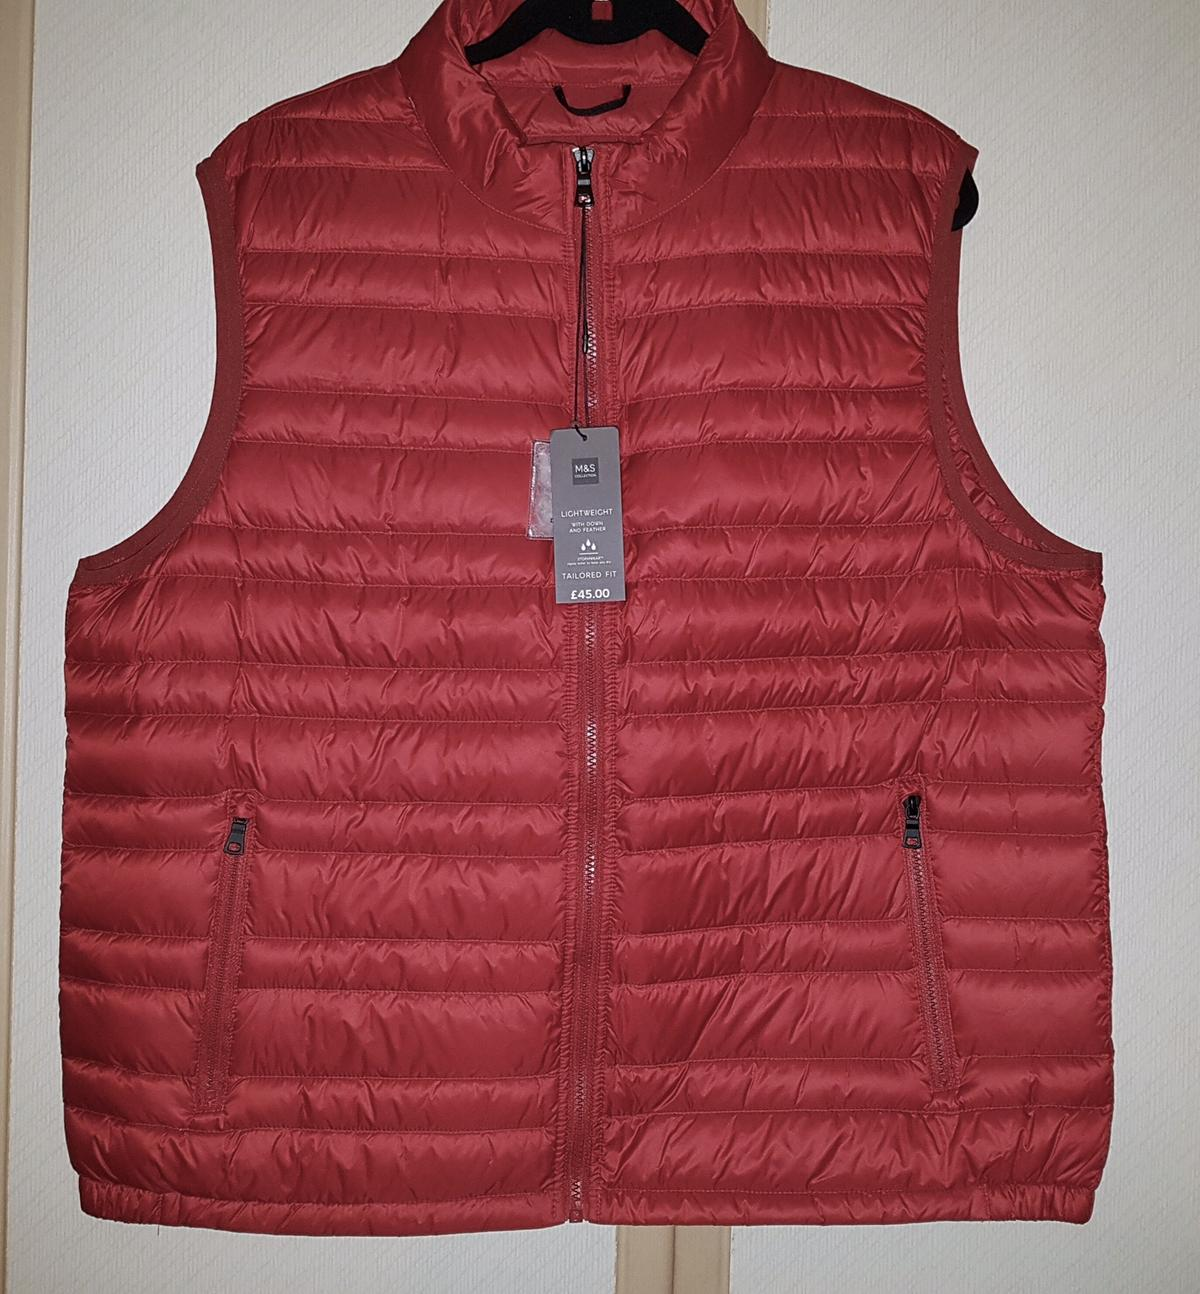 deebfa82f15 BNWT: M&S MENS DOWN & FEATHER GILET SIZE XL in Newcastle upon Tyne ...